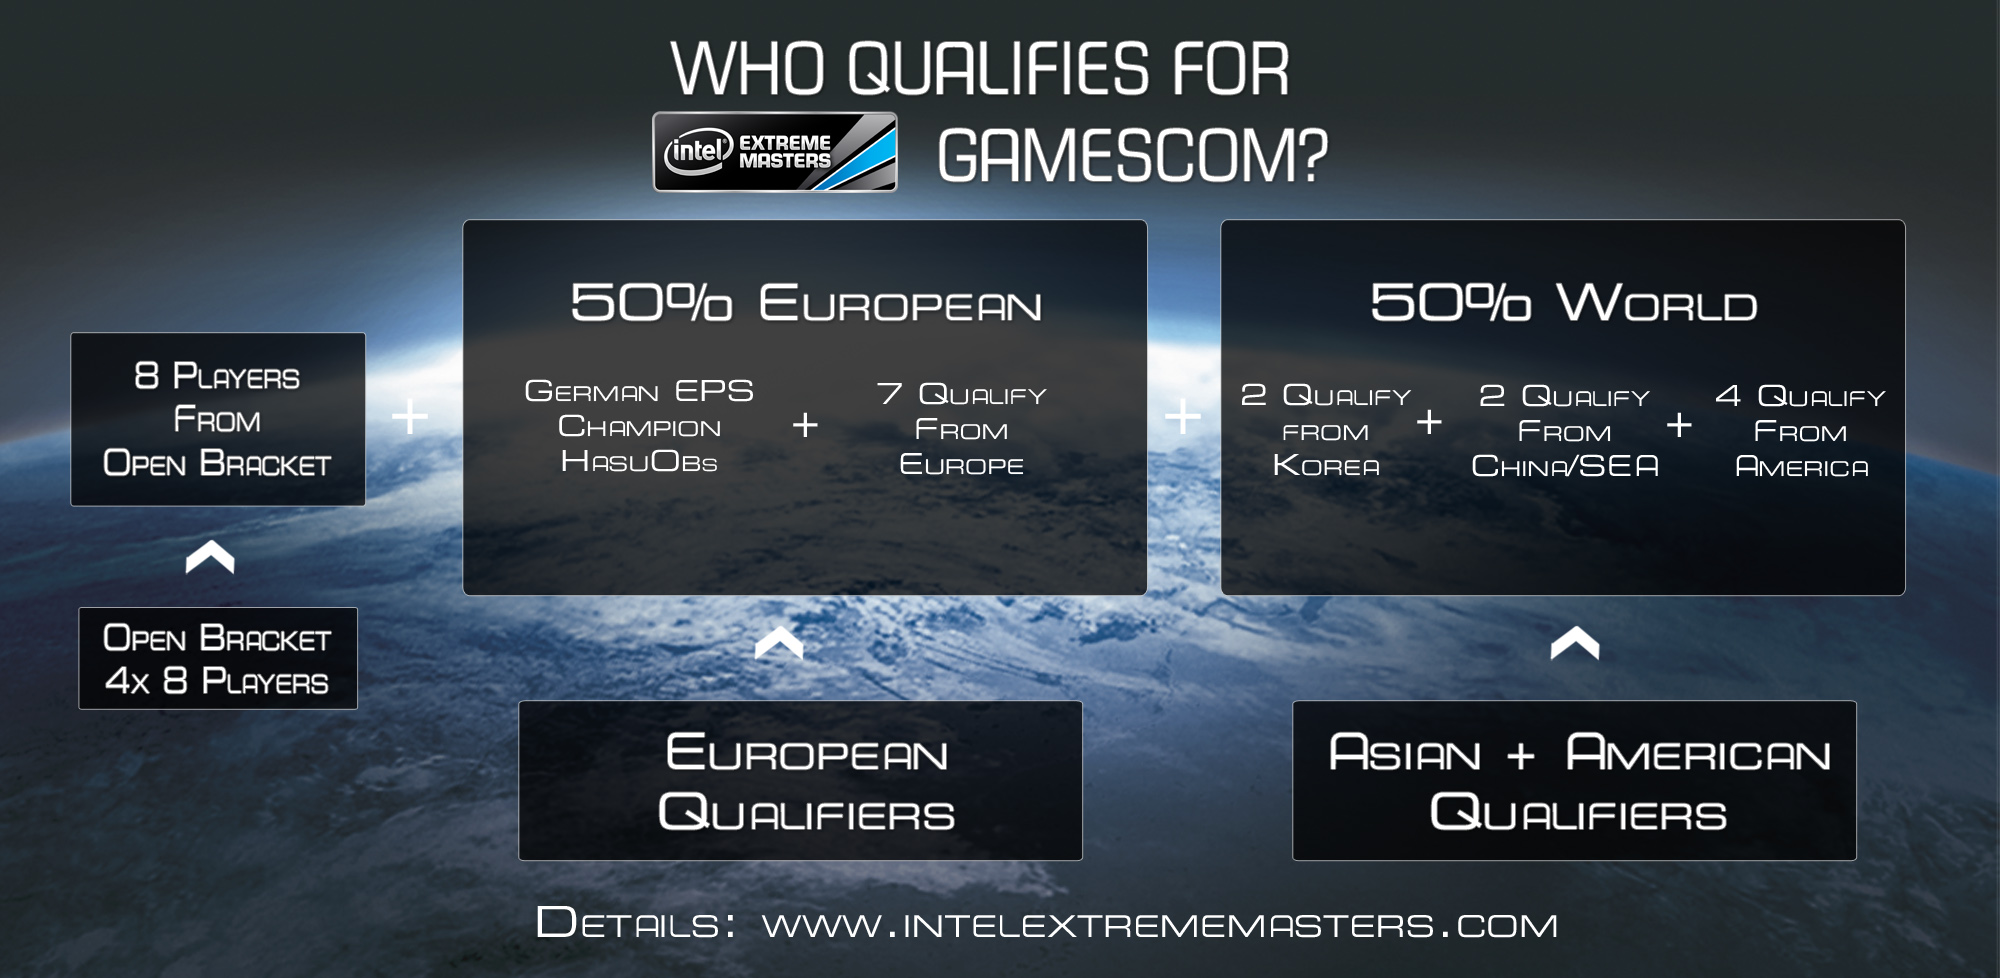 Infographic_Qualifier_Gamescom_Total.jpg